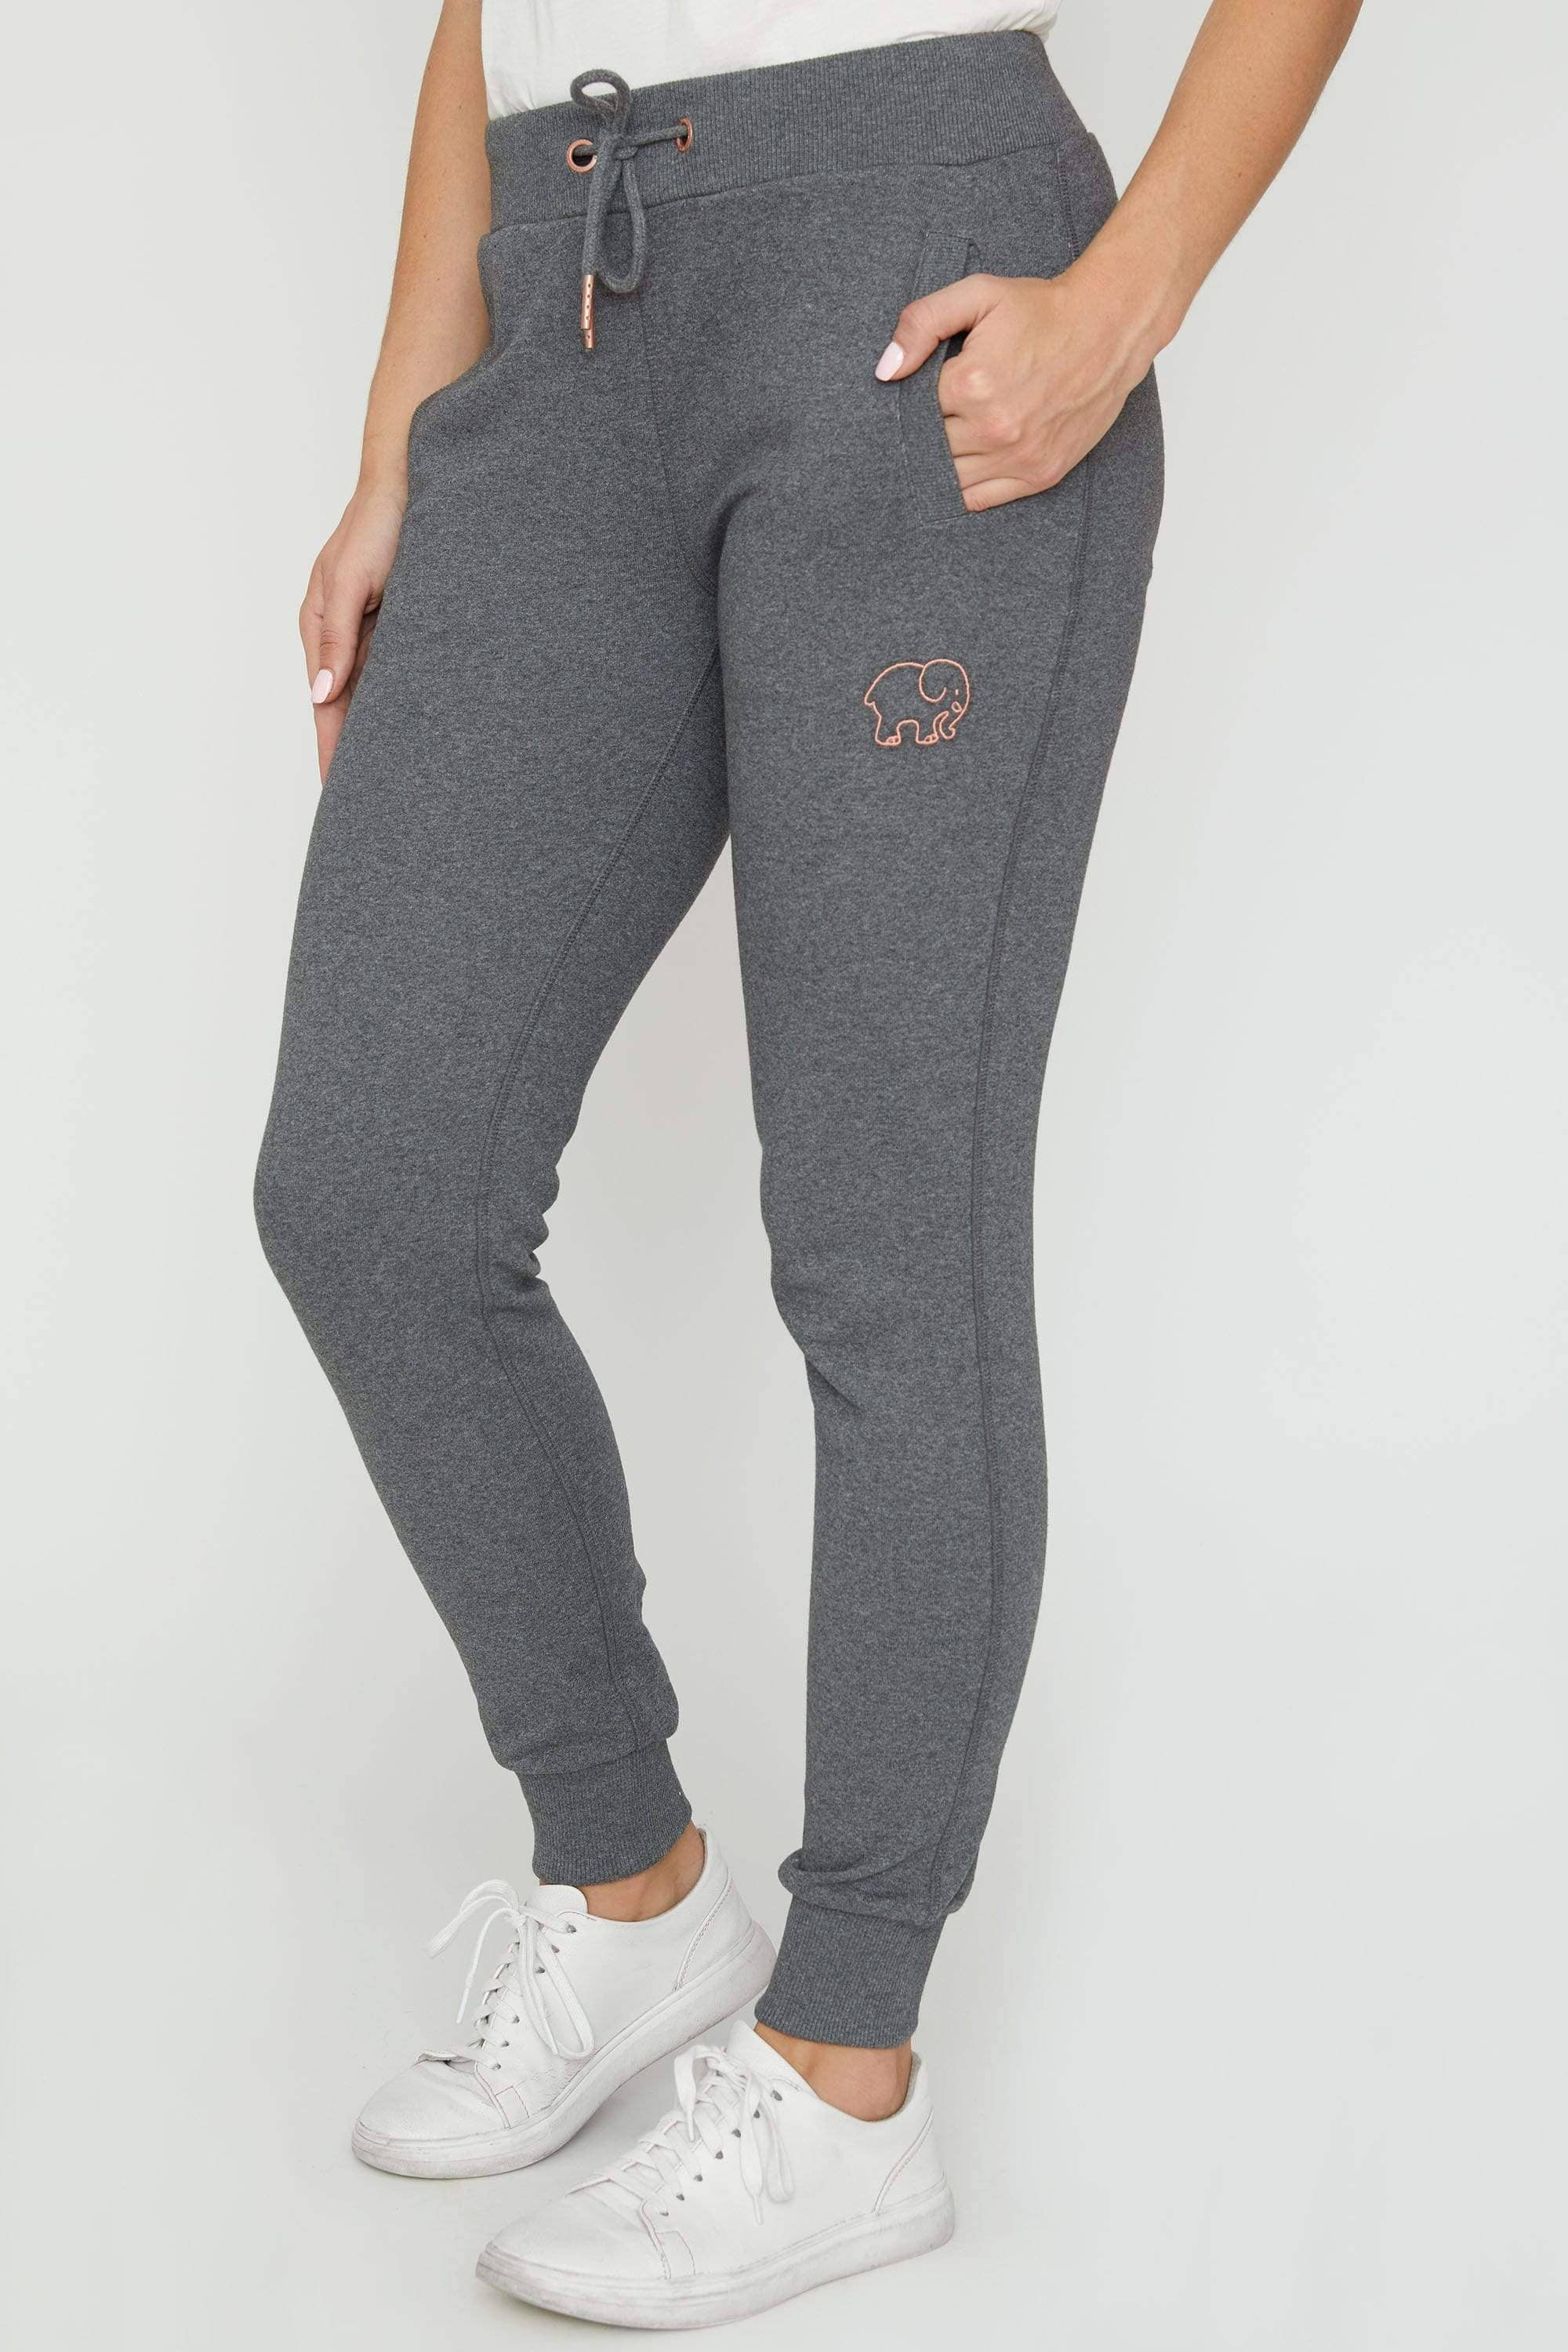 Ivory Ella Women's Bottoms Grey Sierra Organic Jogger